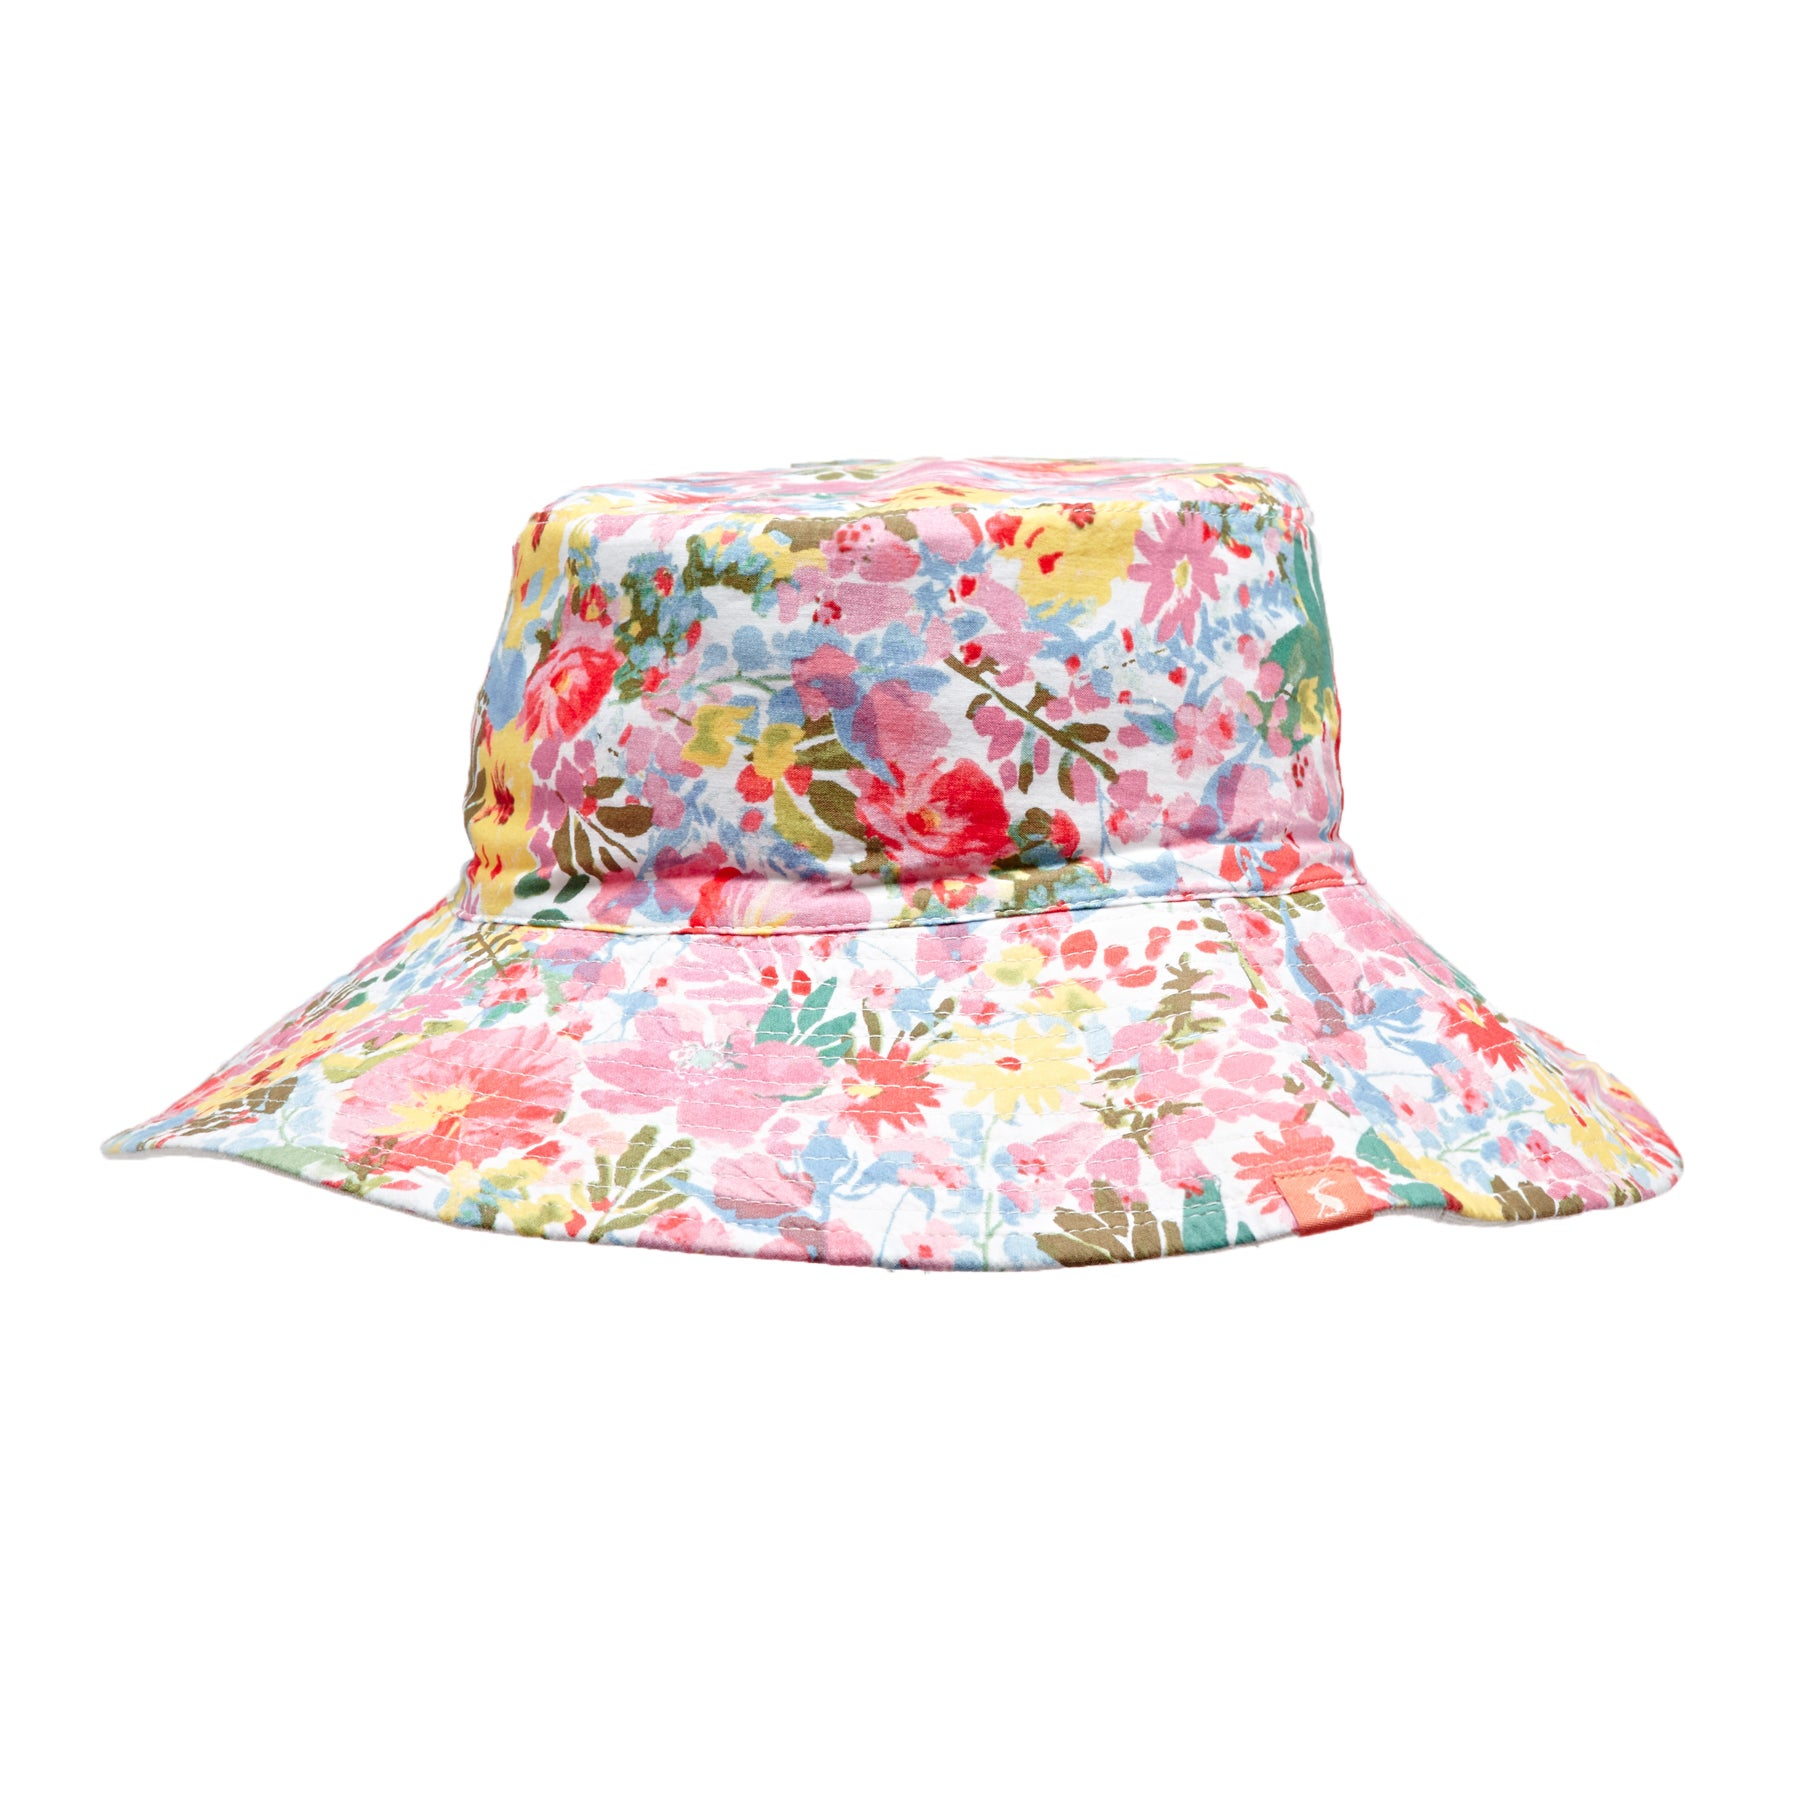 Joules Womens Celia Cotton Sun Hat ONE in WHITE FLORAL MEADOW in One Size